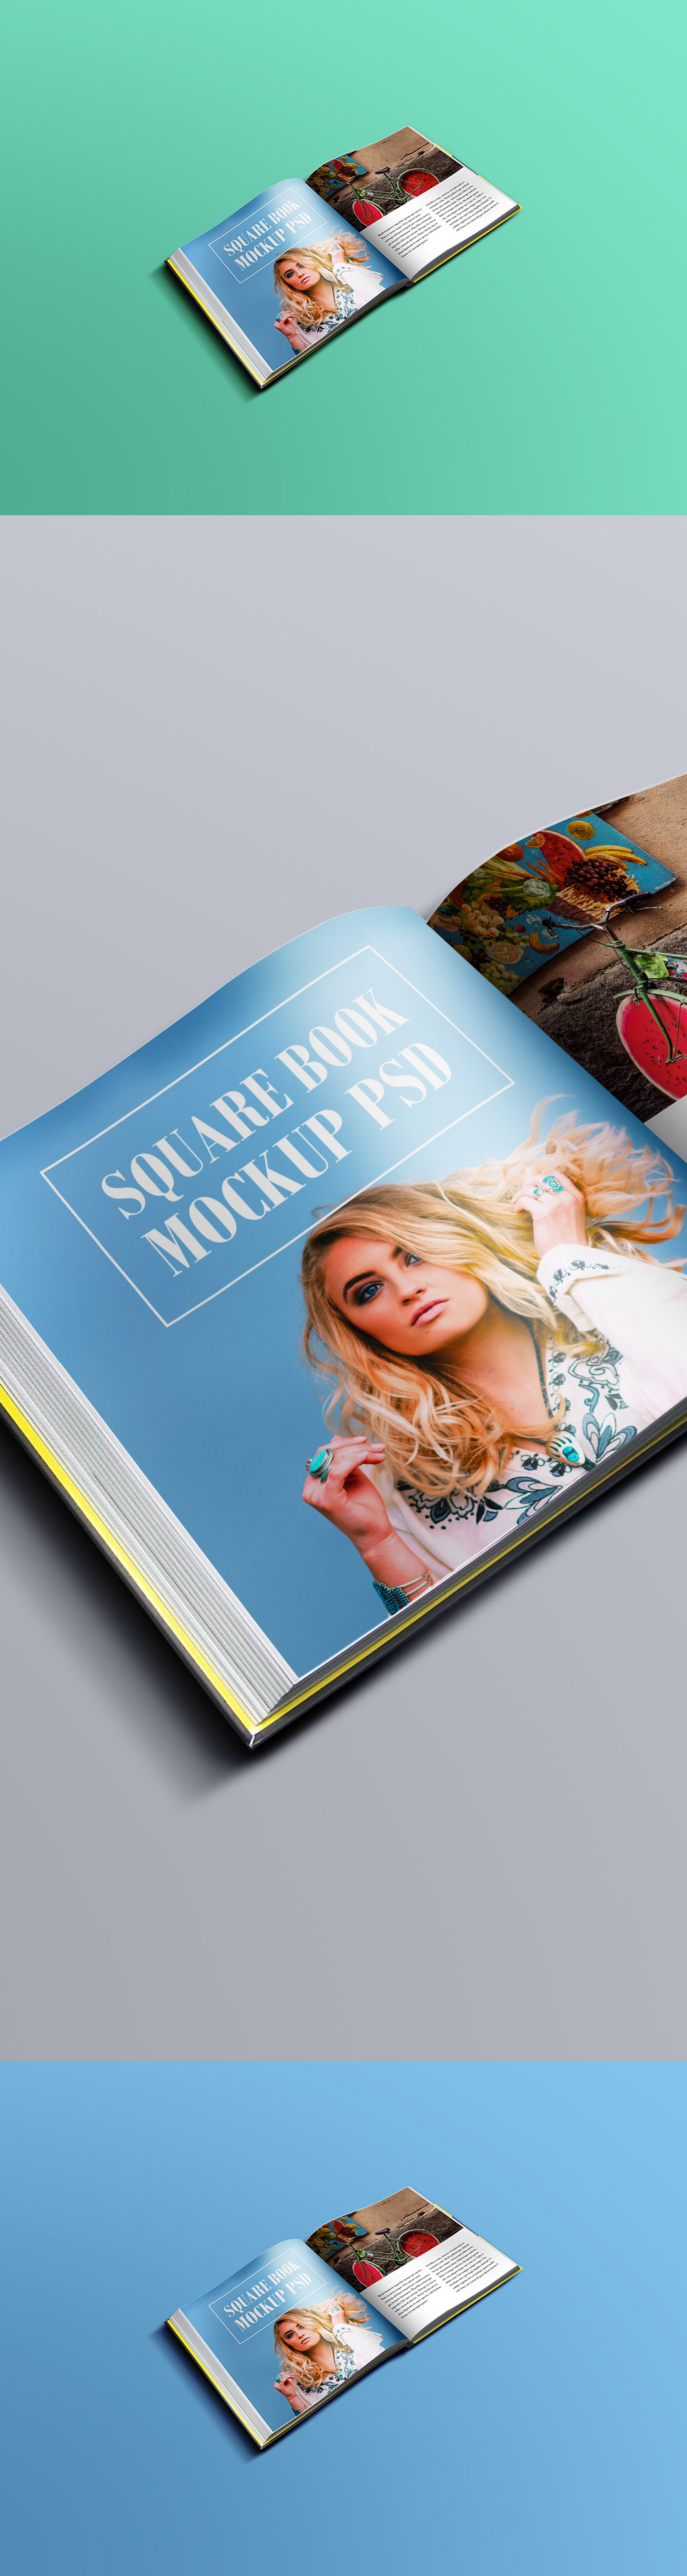 Square Book Mockup PSD